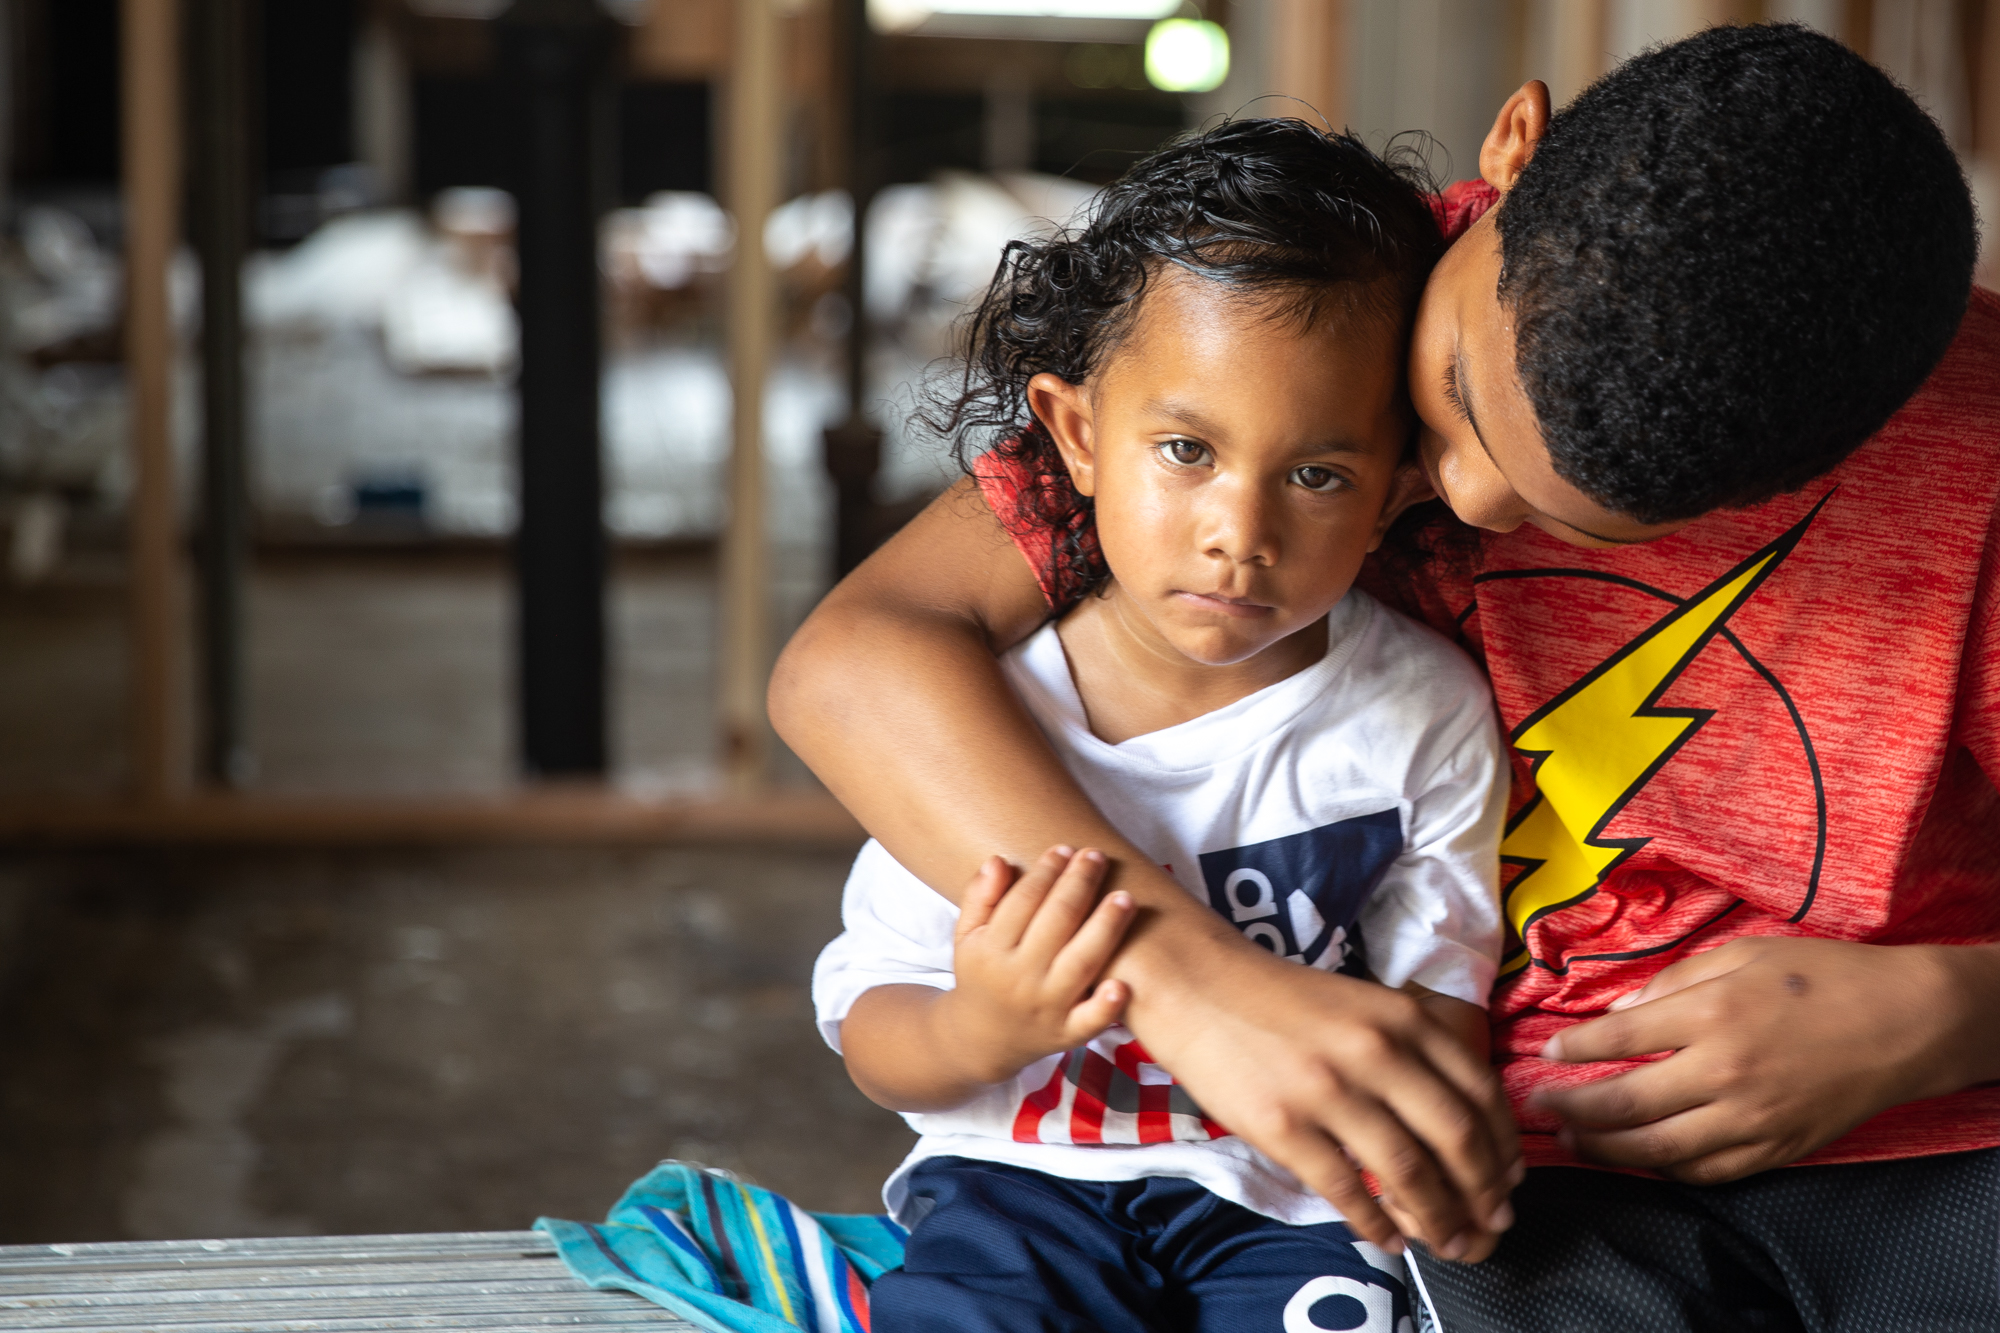 Alonzo and Walter Beal - Alonzo Beal, 11, and his 3-year-old brother, Walter, are part of a family of six living in a two-bedroom home in Houston since Hurricane Harvey destroyed their house and all their belongings. The family did not receive enough money from FEMA to repair their house, instead squeezing into the much smaller place next door. (Rachel Farrell/News21)